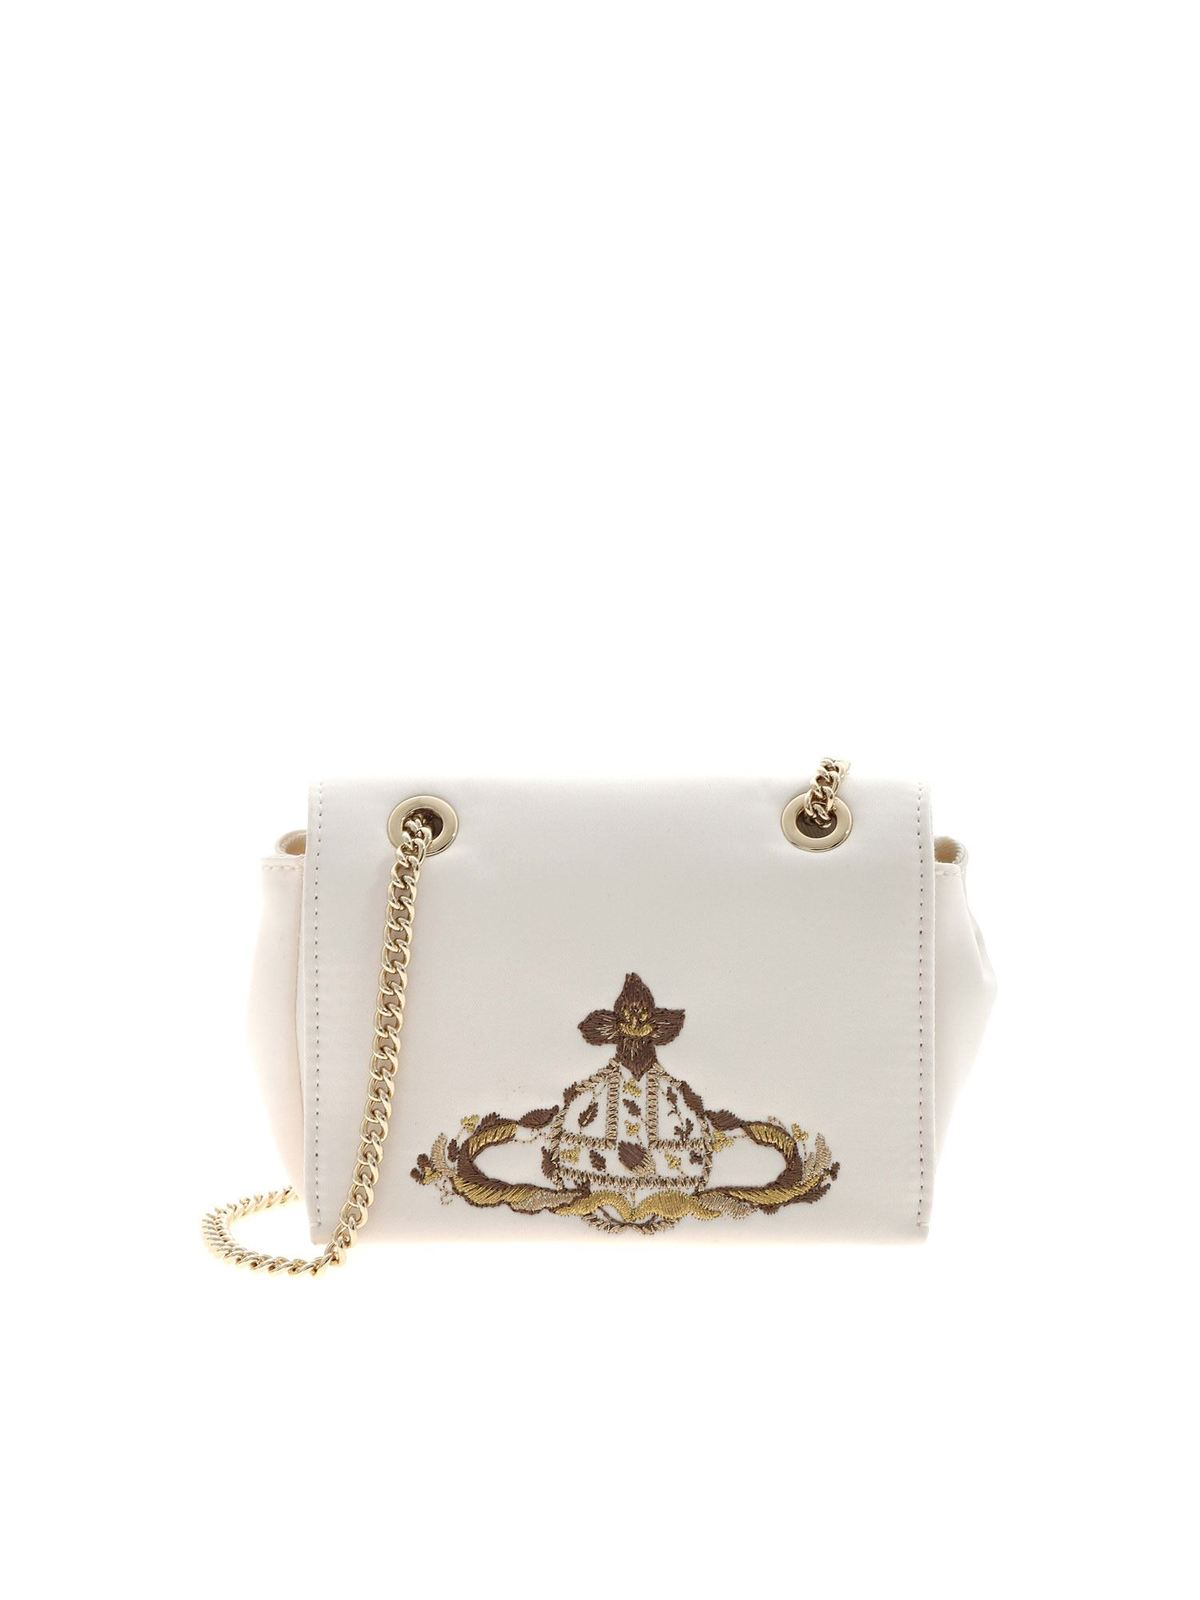 Vivienne Westwood BRIDAL BAG IN IVORY COLOR